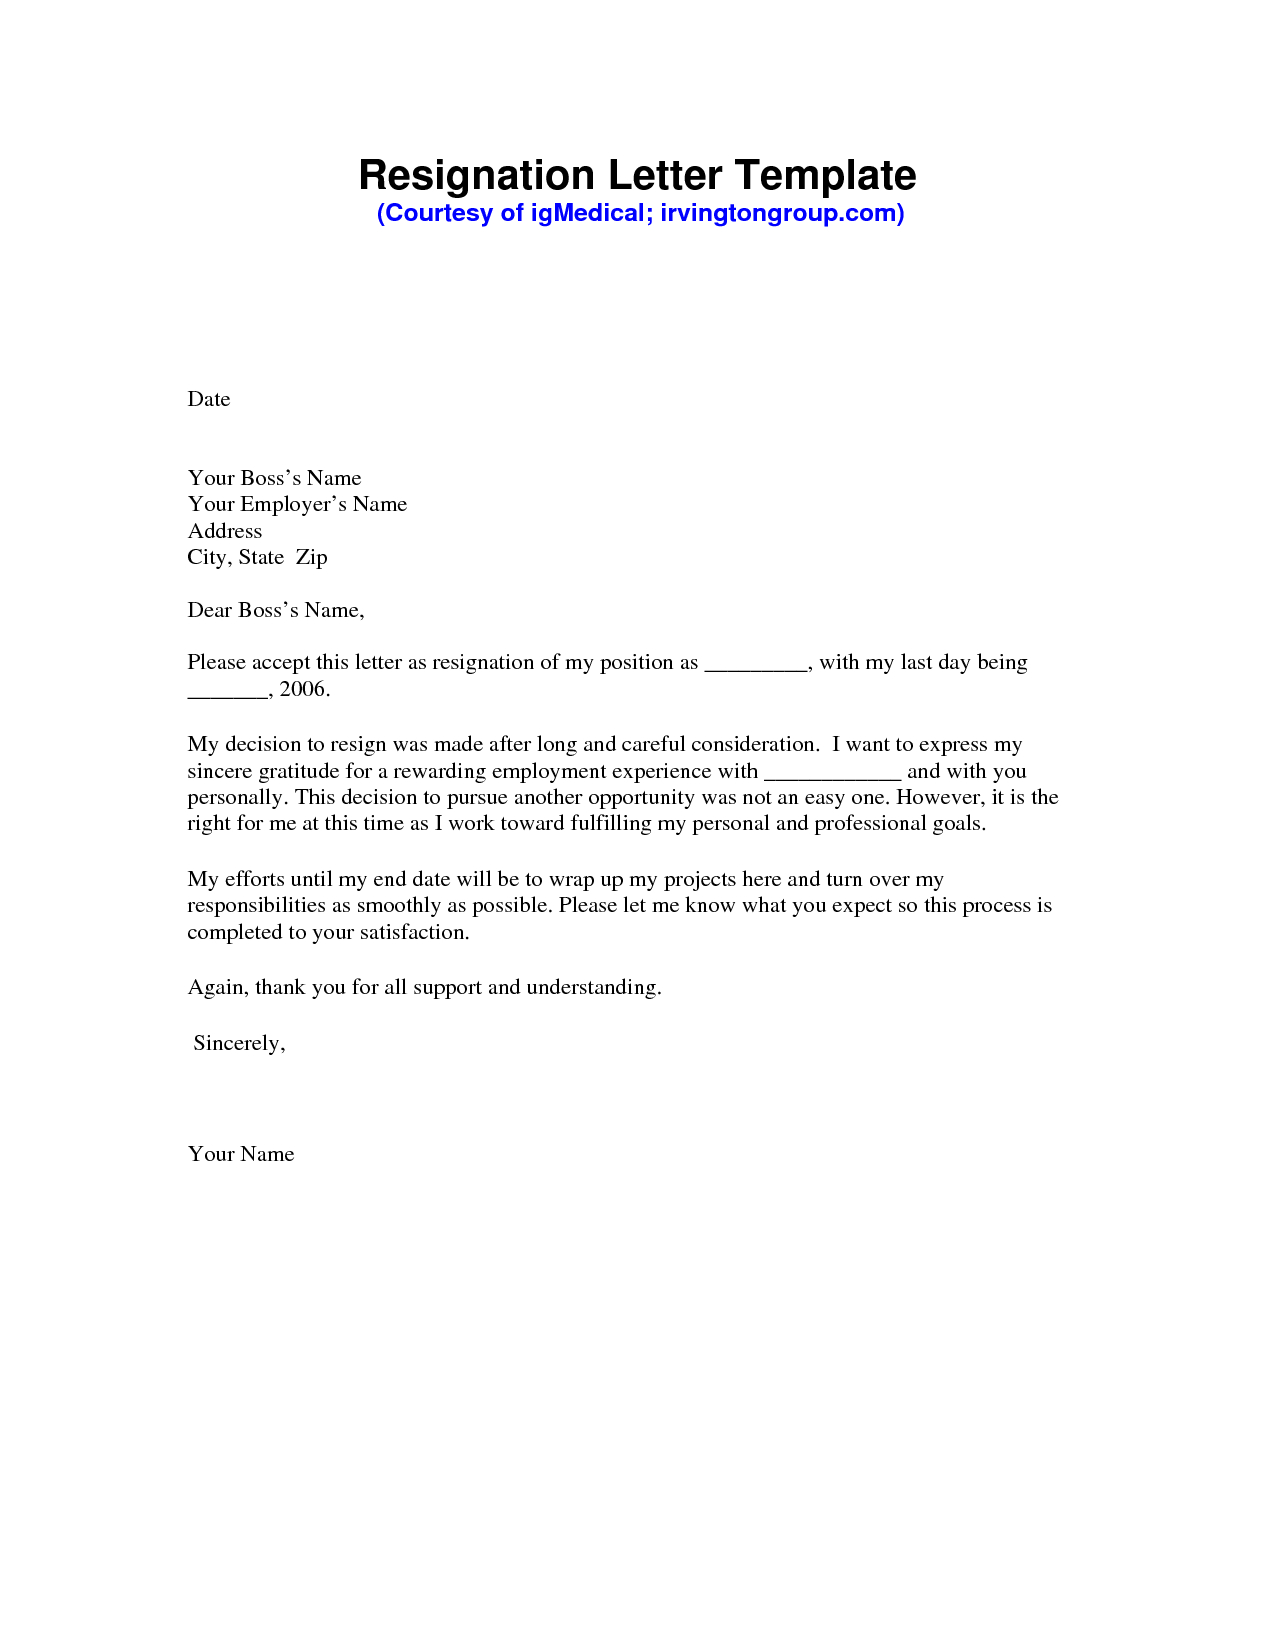 Employment Verification Letter Sample and Template - Resignation Letter Sample Pdf Resignation Letter